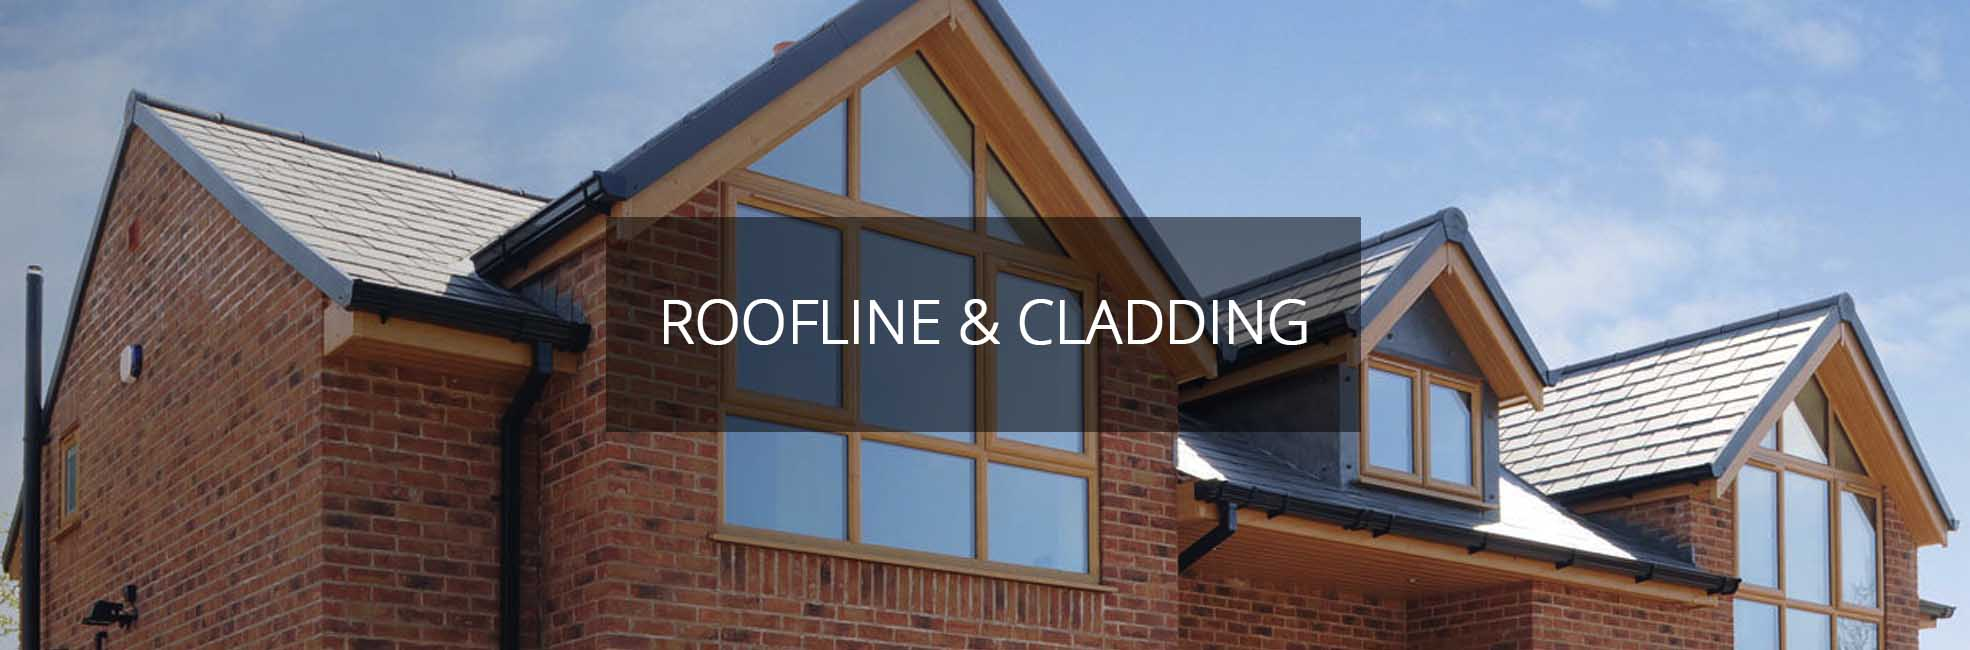 Roofline & Cladding Products Northampton